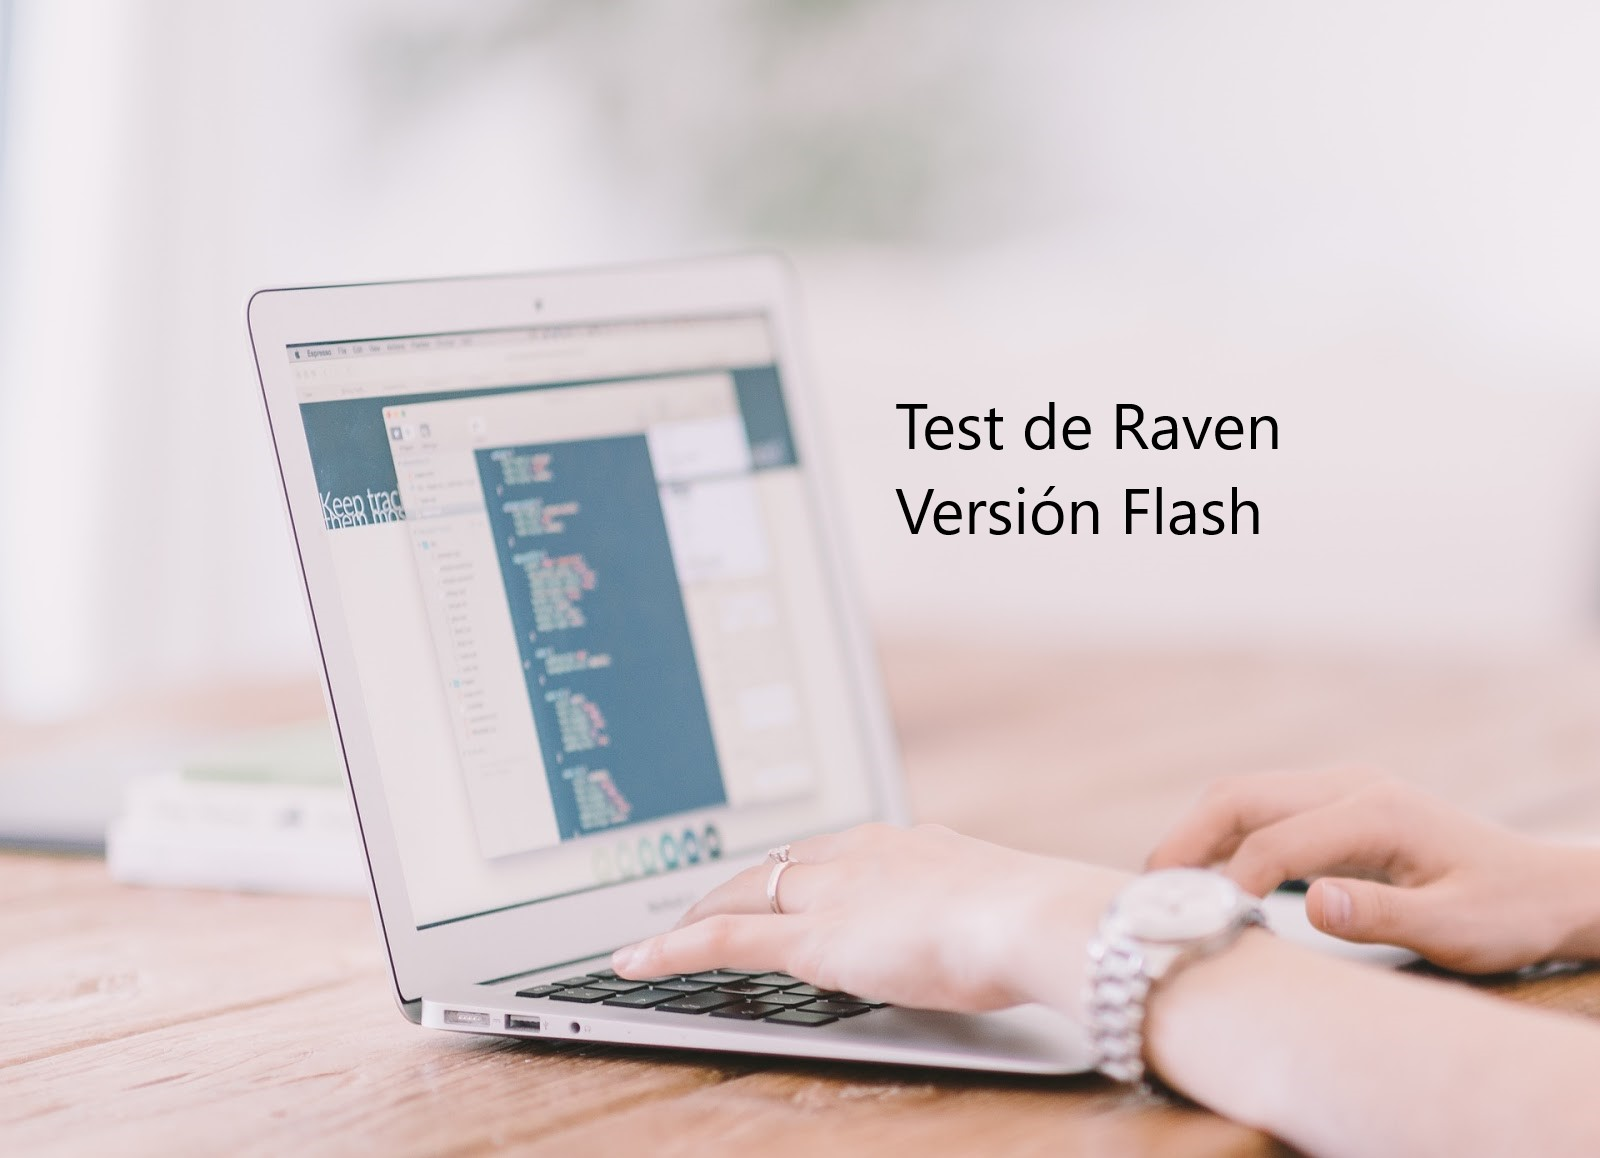 Descargar Test de Raven para PC,  gratis.